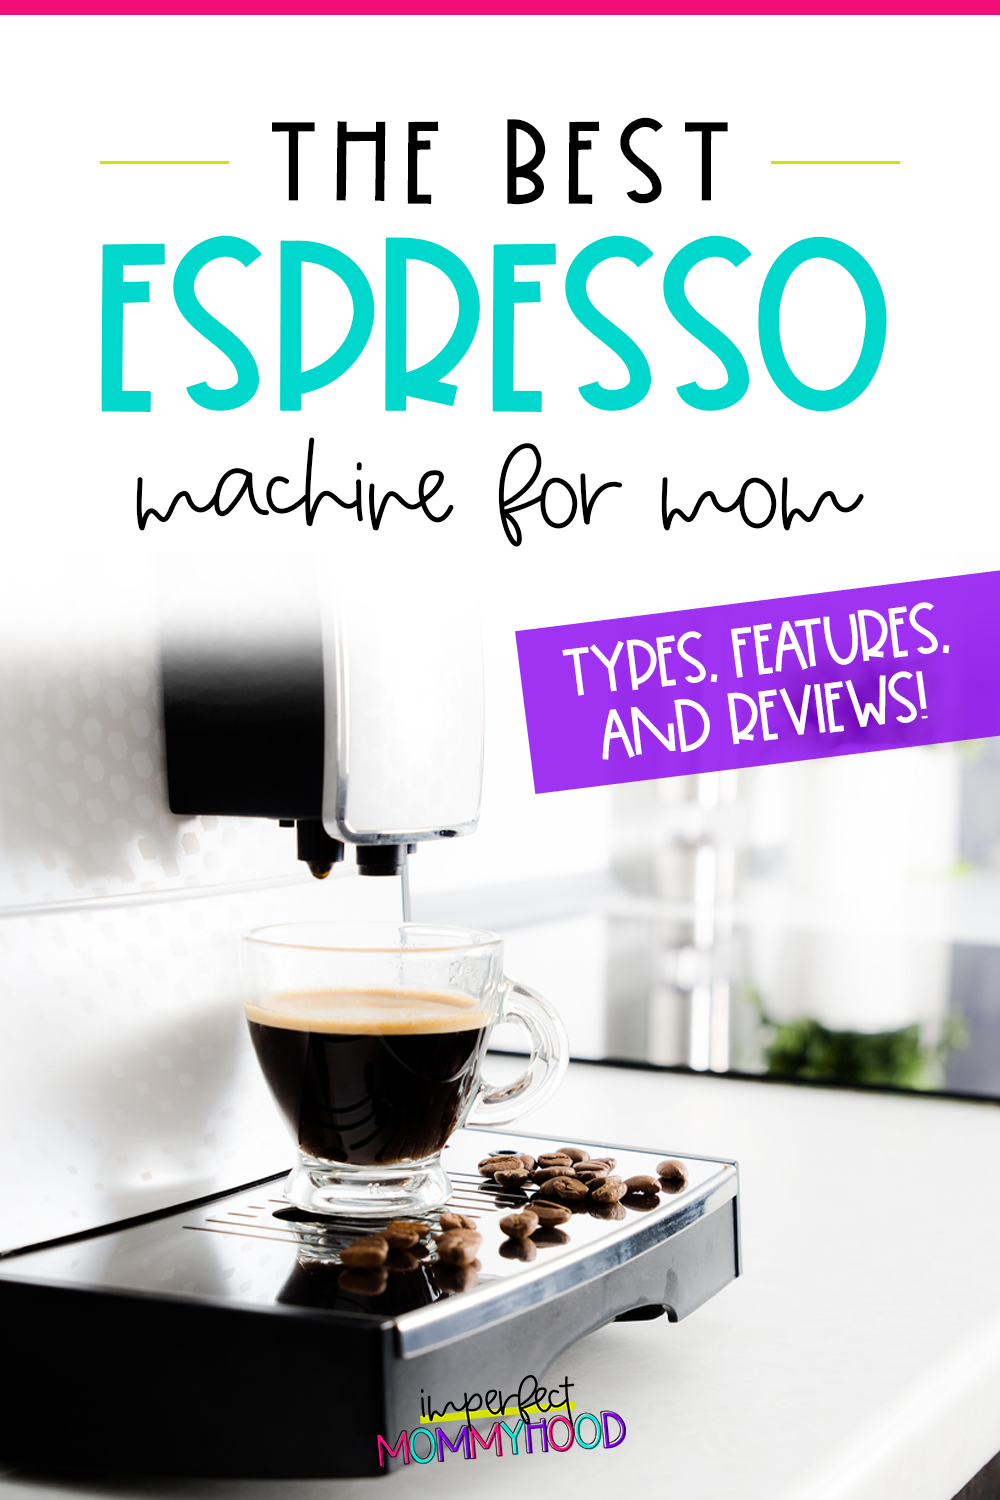 Choosing the best espresso machine can be hard! Make it a little easier by learning about the types, features, and more. I've included a wide range of options, no matter what you're looking for. Affordable, easy, high-quality, and more. If you're in the market for a great espresso machine at home, I highly suggest checking out some of the options on this list. #reviews #coffee #automaticespressomachine Choosing the best espresso machine can be hard! Make it a little easier by learning about the #espressoathome